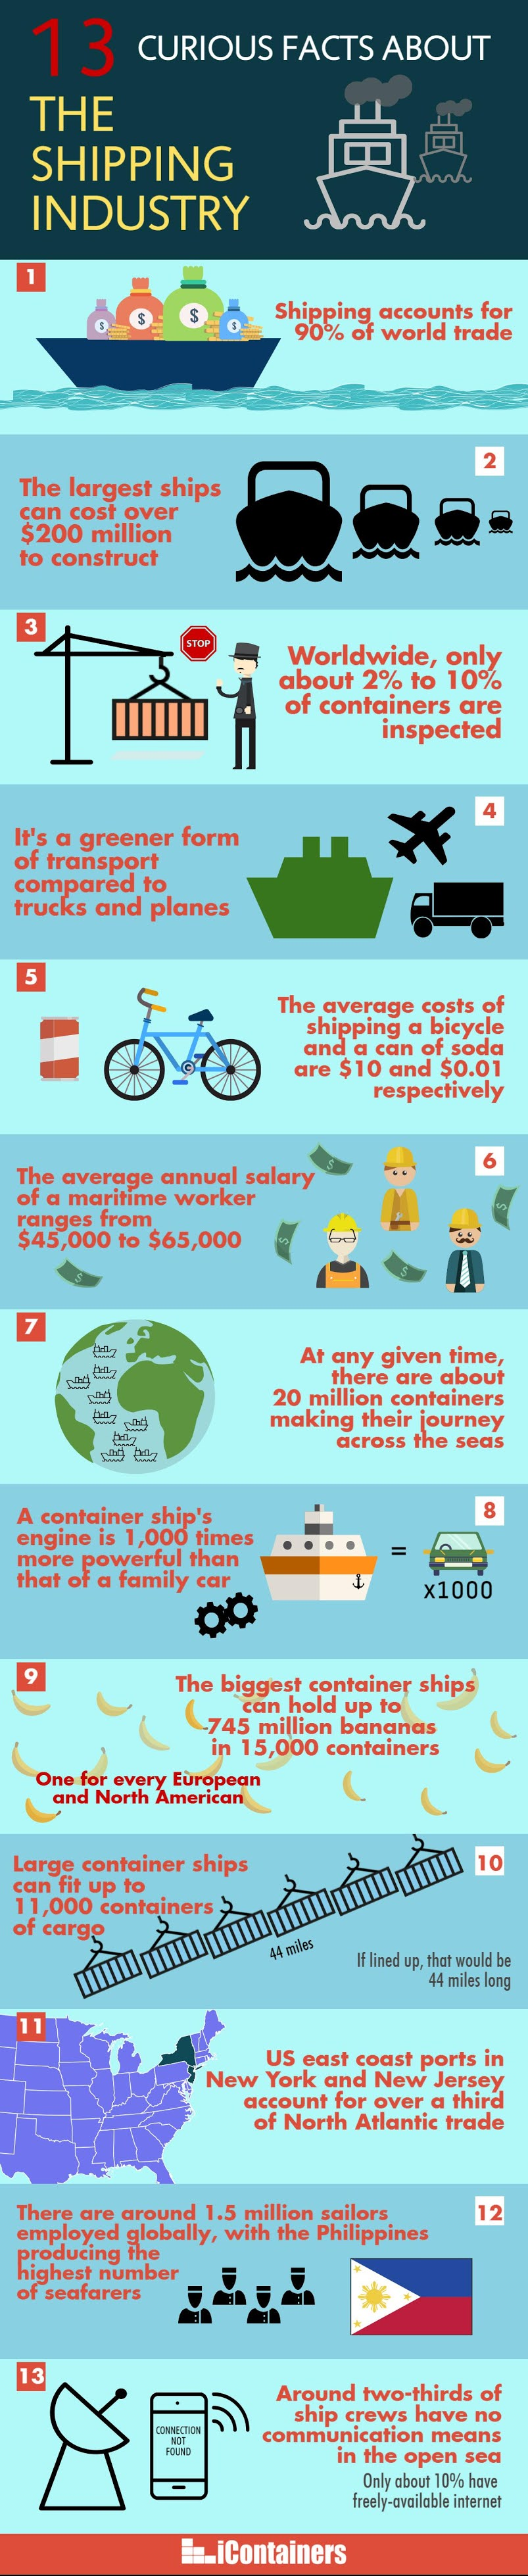 13 curious facts about the shipping industry #infographic